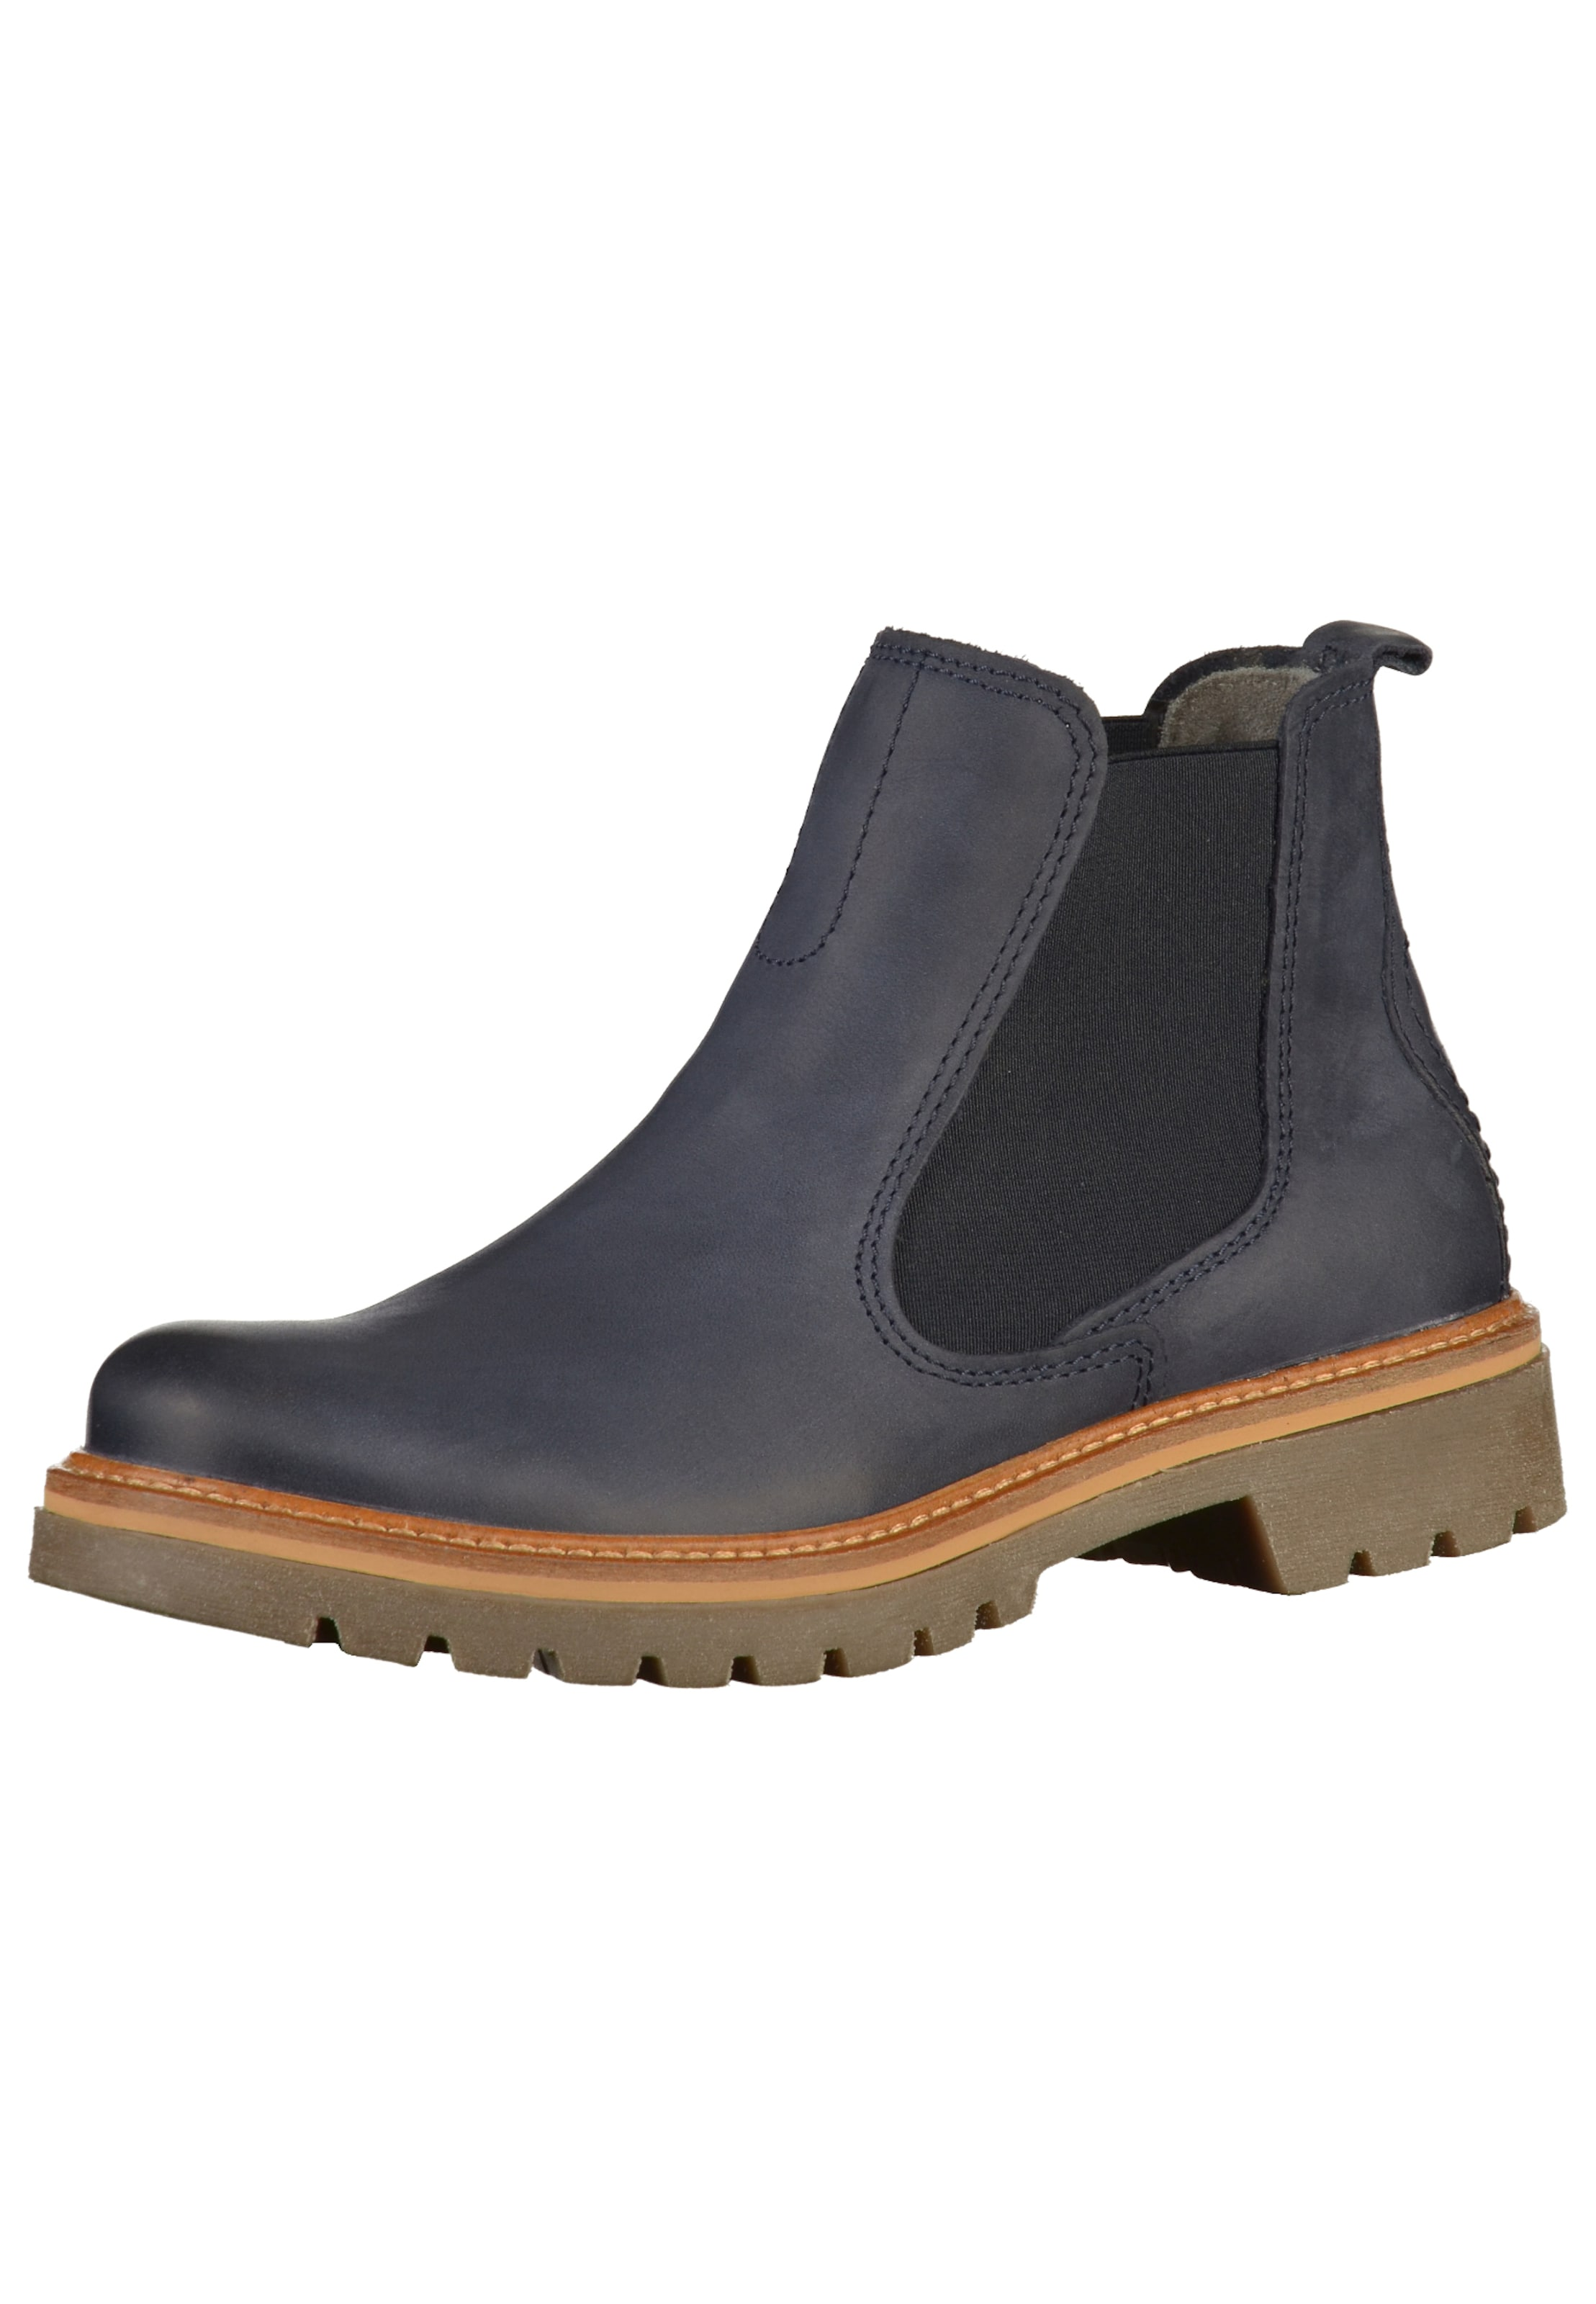 CAMEL ACTIVE Chelsea Boots  Canberra